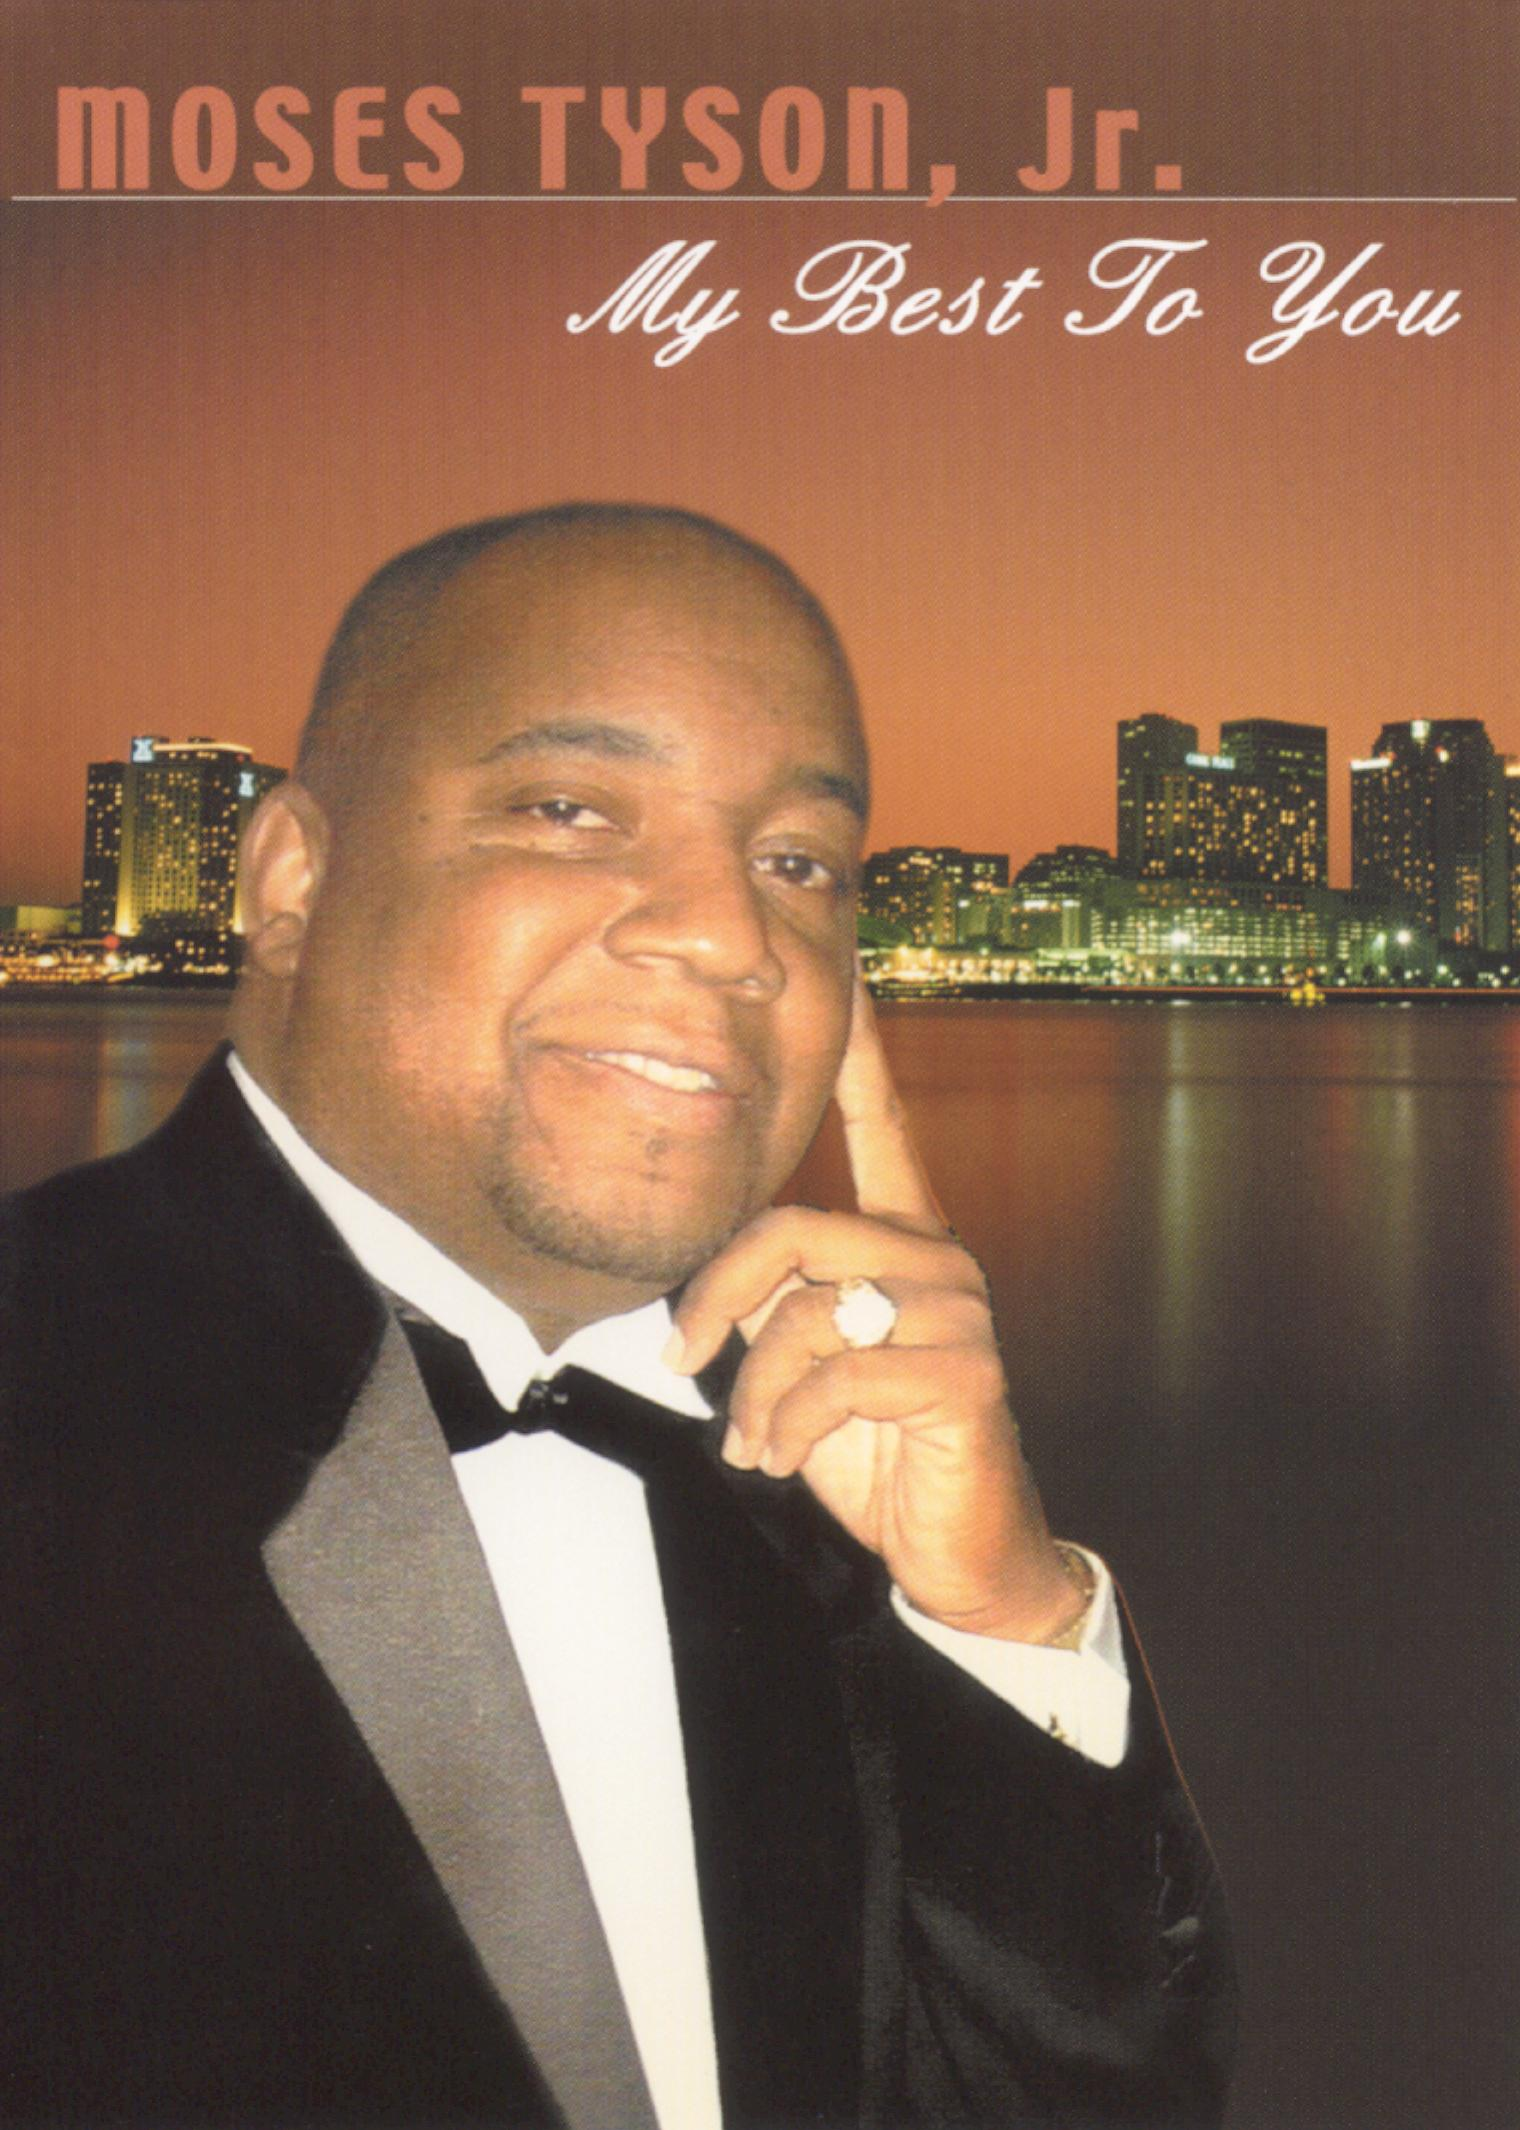 Moses Tyson, Jr.: My Best To You